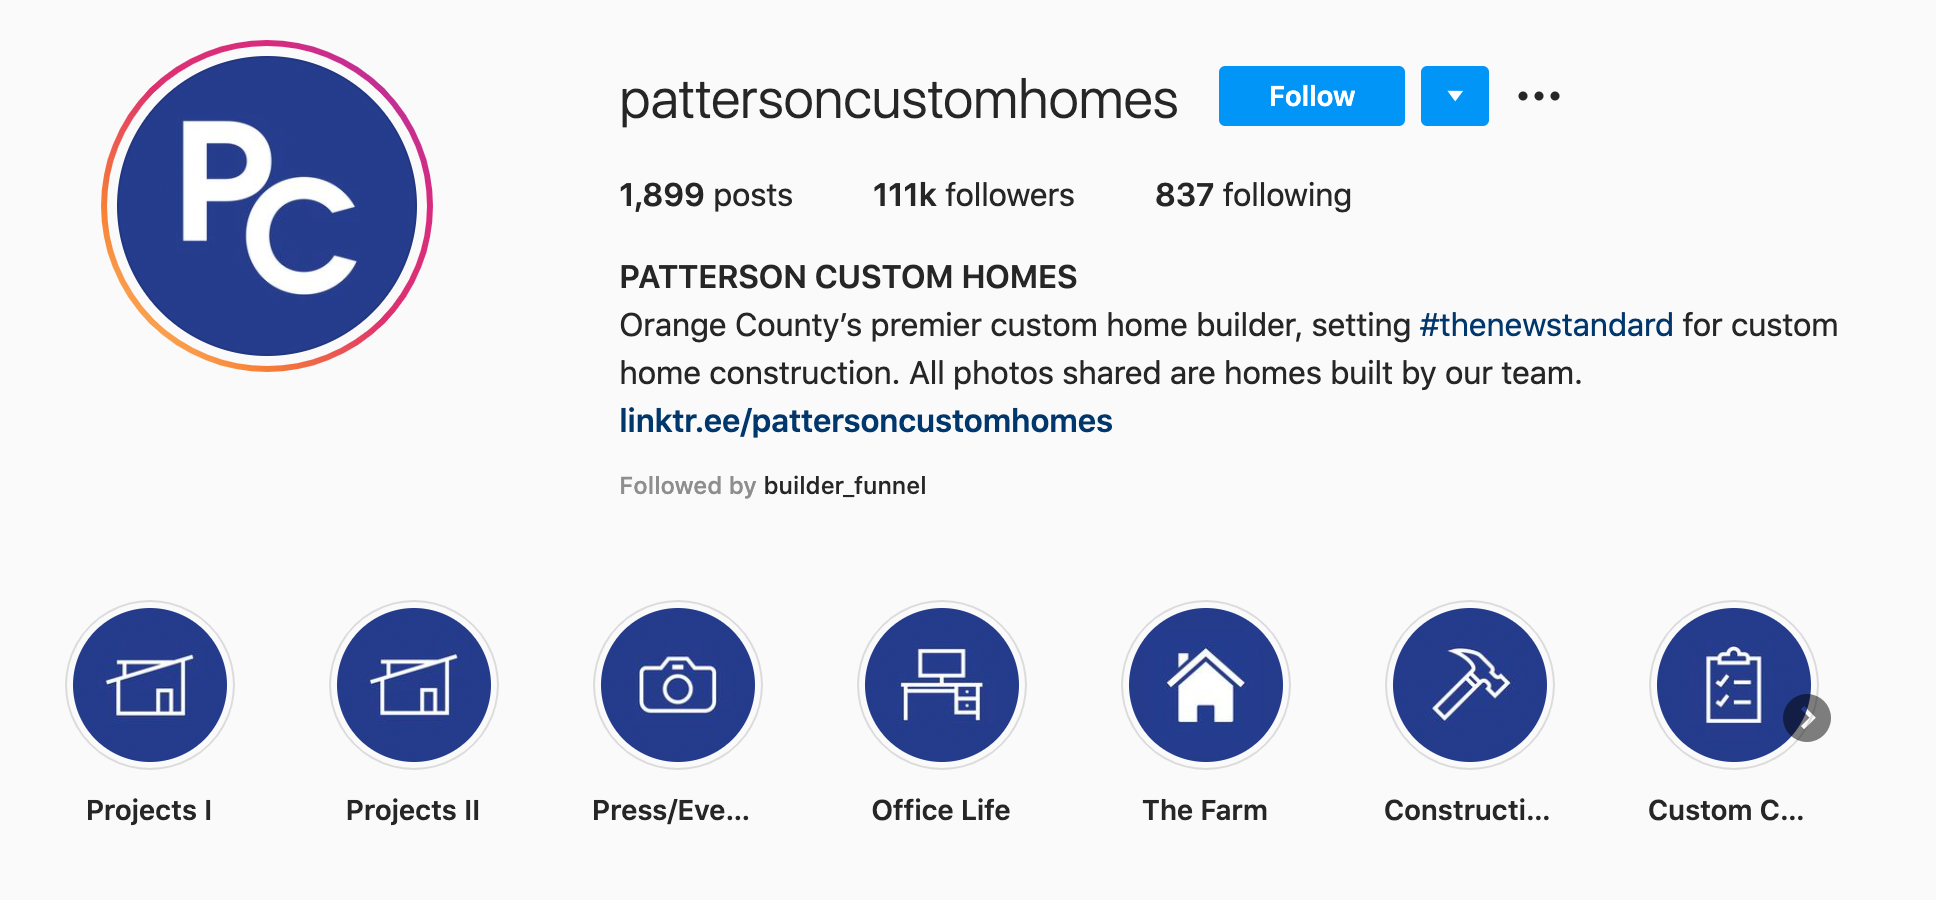 pattersoncustomhomes-instagram-profile